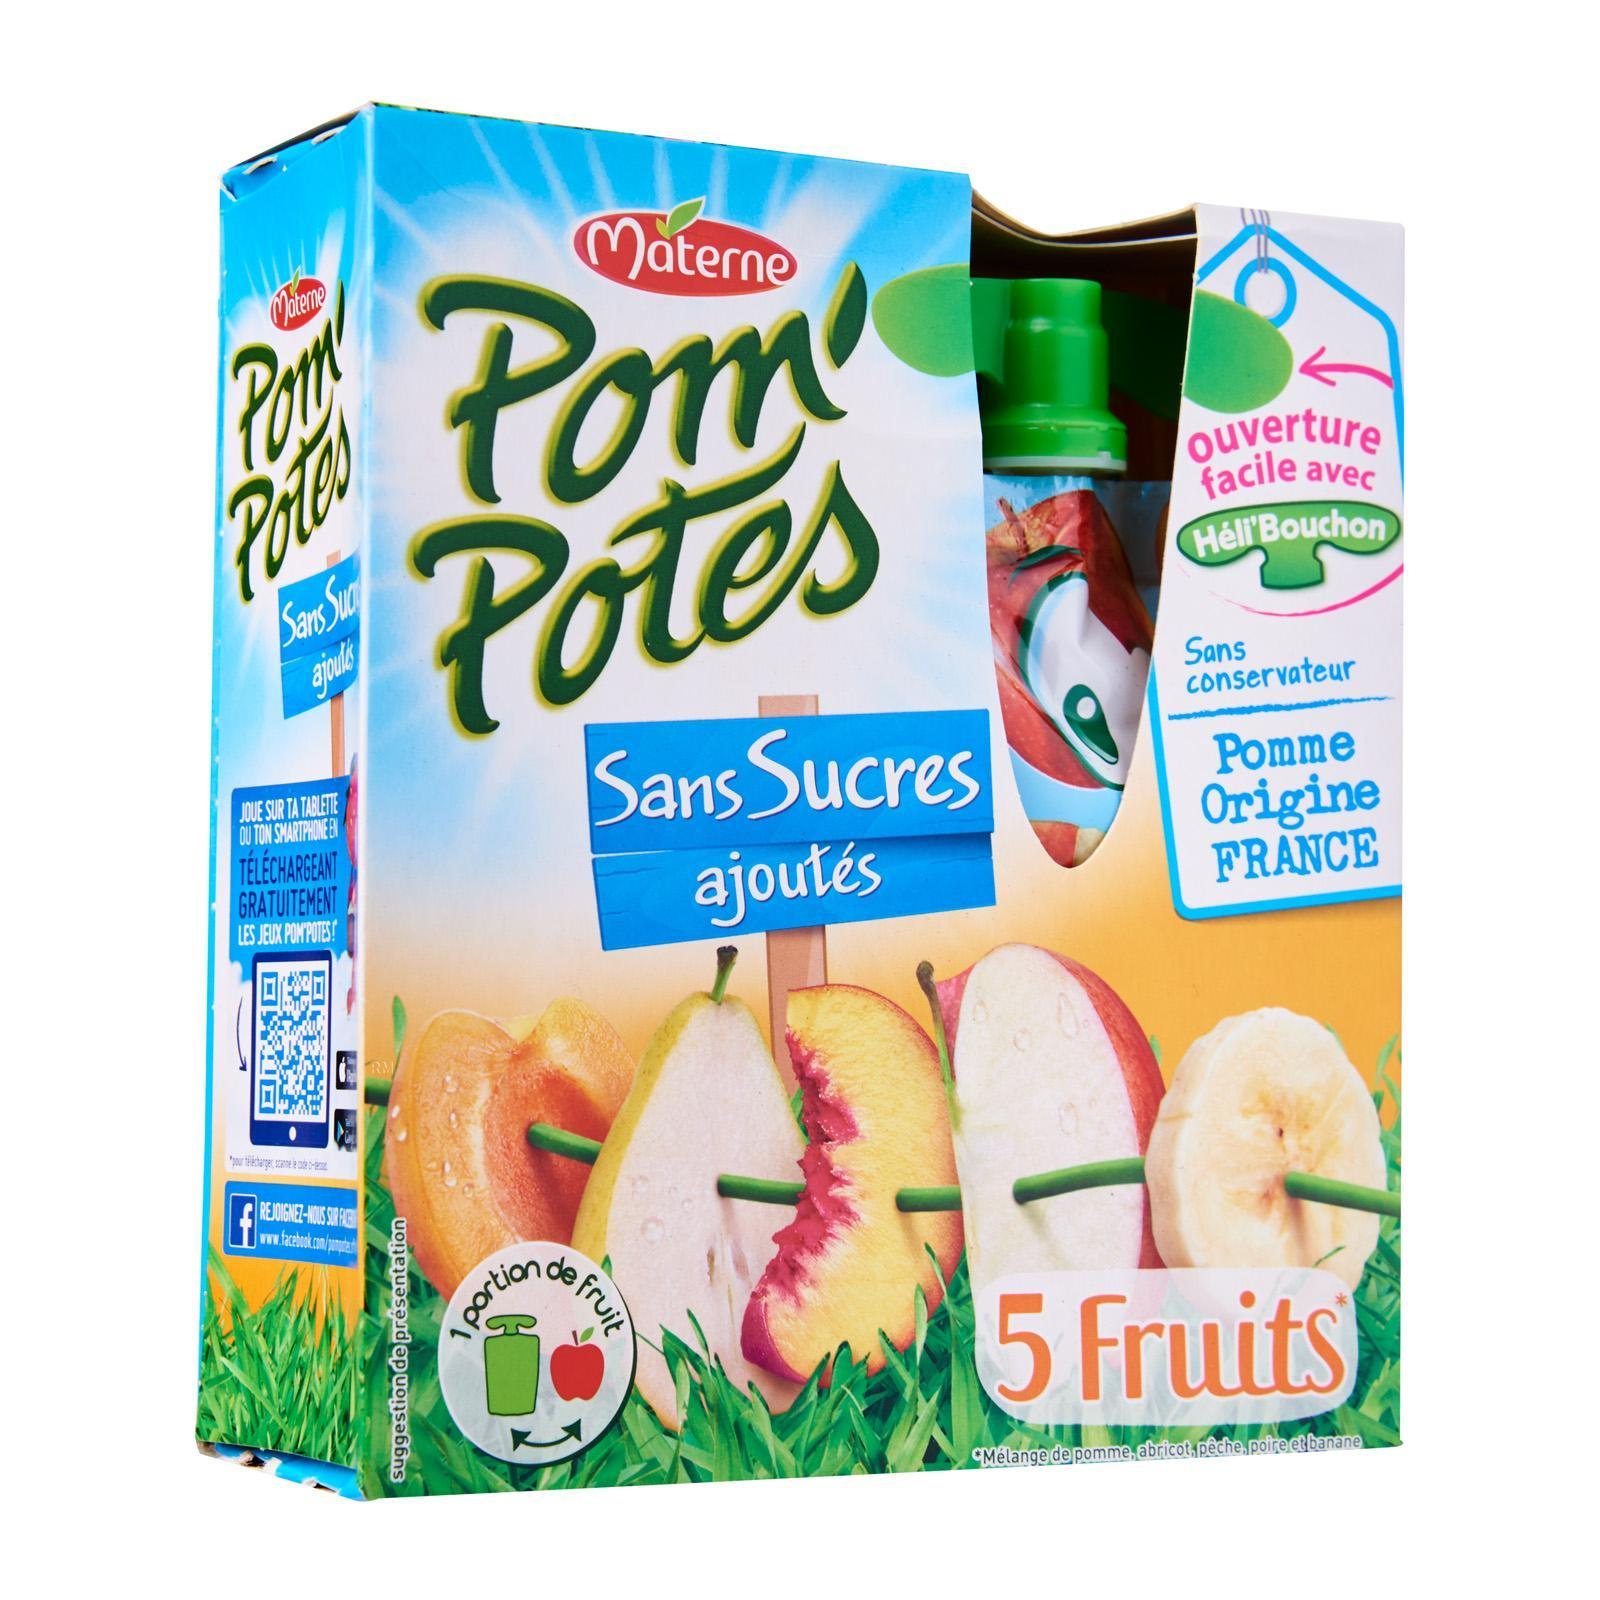 Materne Pom'Potes 5 Fruits Compote With No Added Sugar